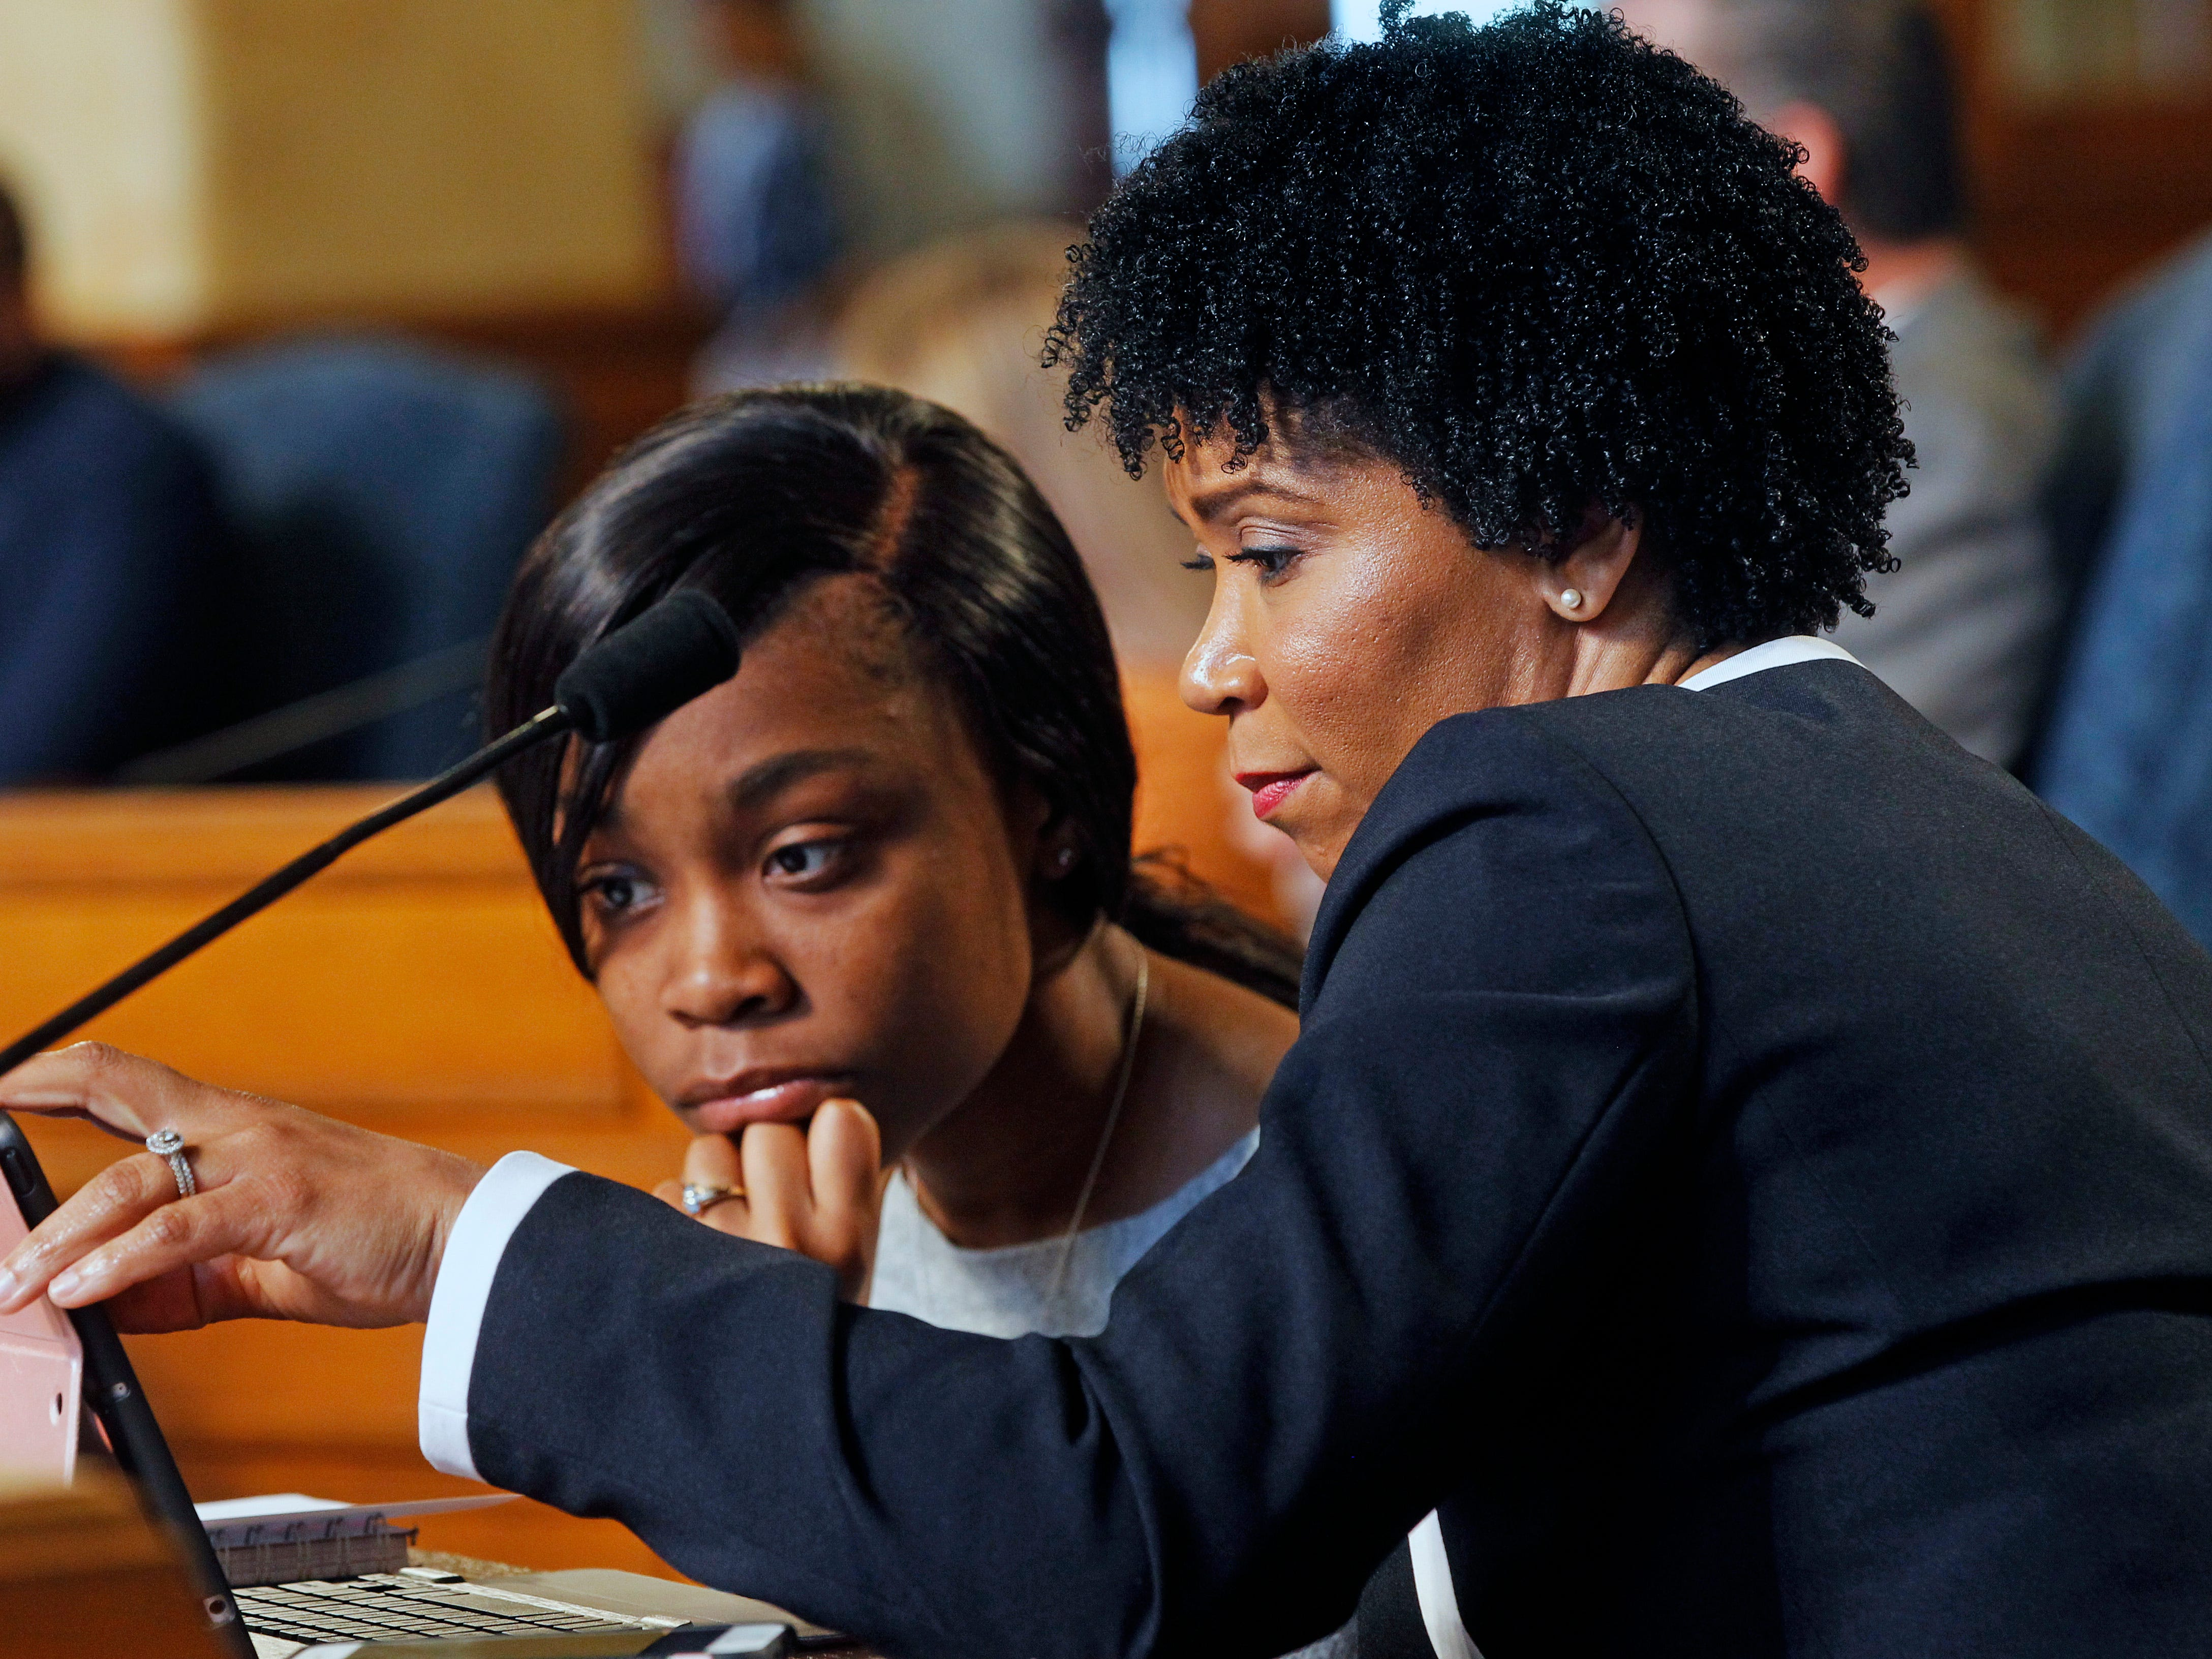 Milwaukee alderwoman Nikiya Dodd, right, is joined by Youth Council member Cheyenne Jordan at a Common Council  meeting at Milwaukee City Hall.